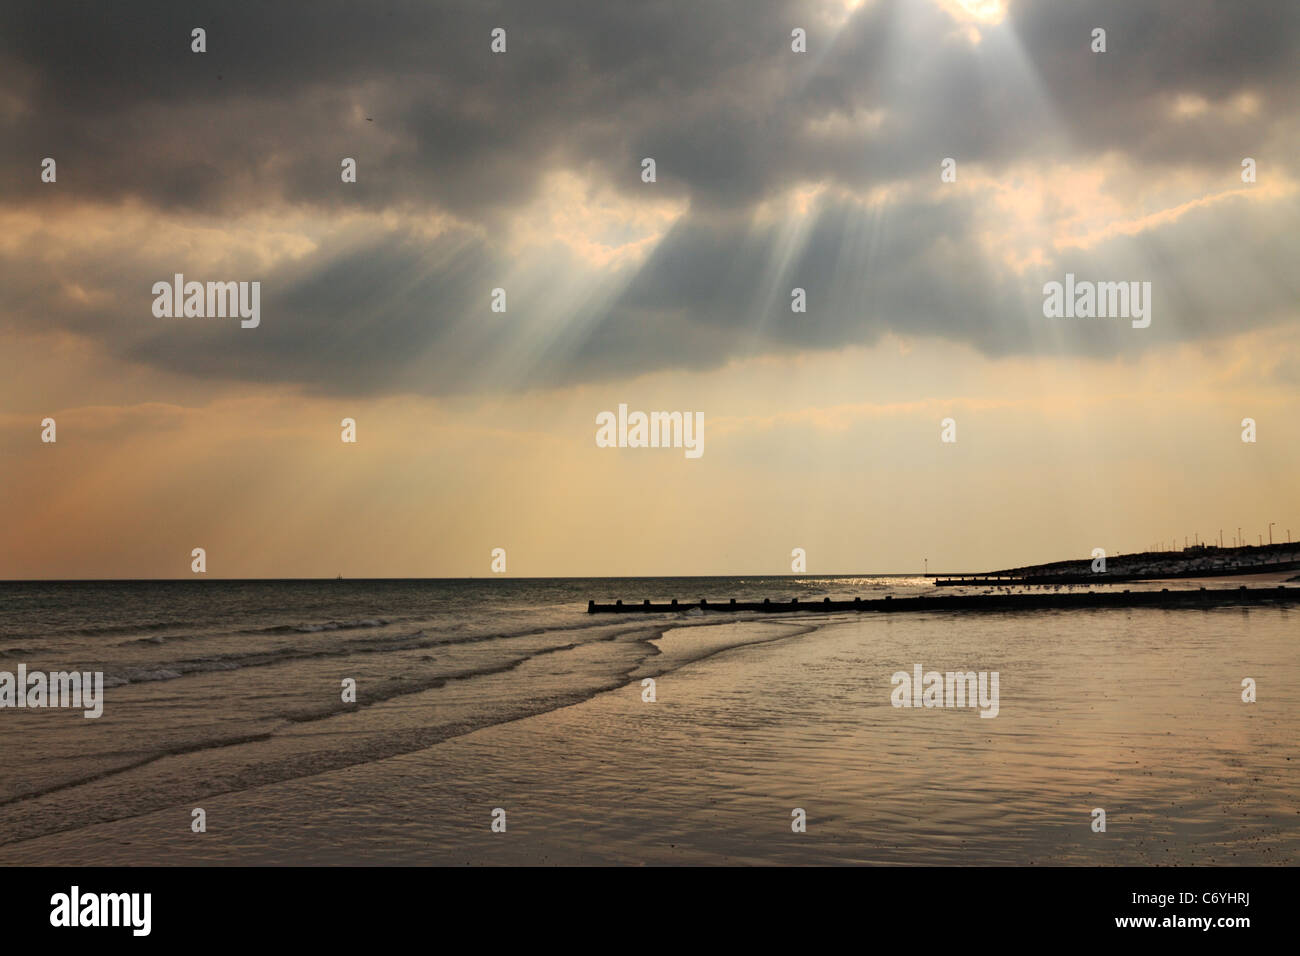 Sunrays through a stormy cloud, Worthing, West Sussex - Stock Image